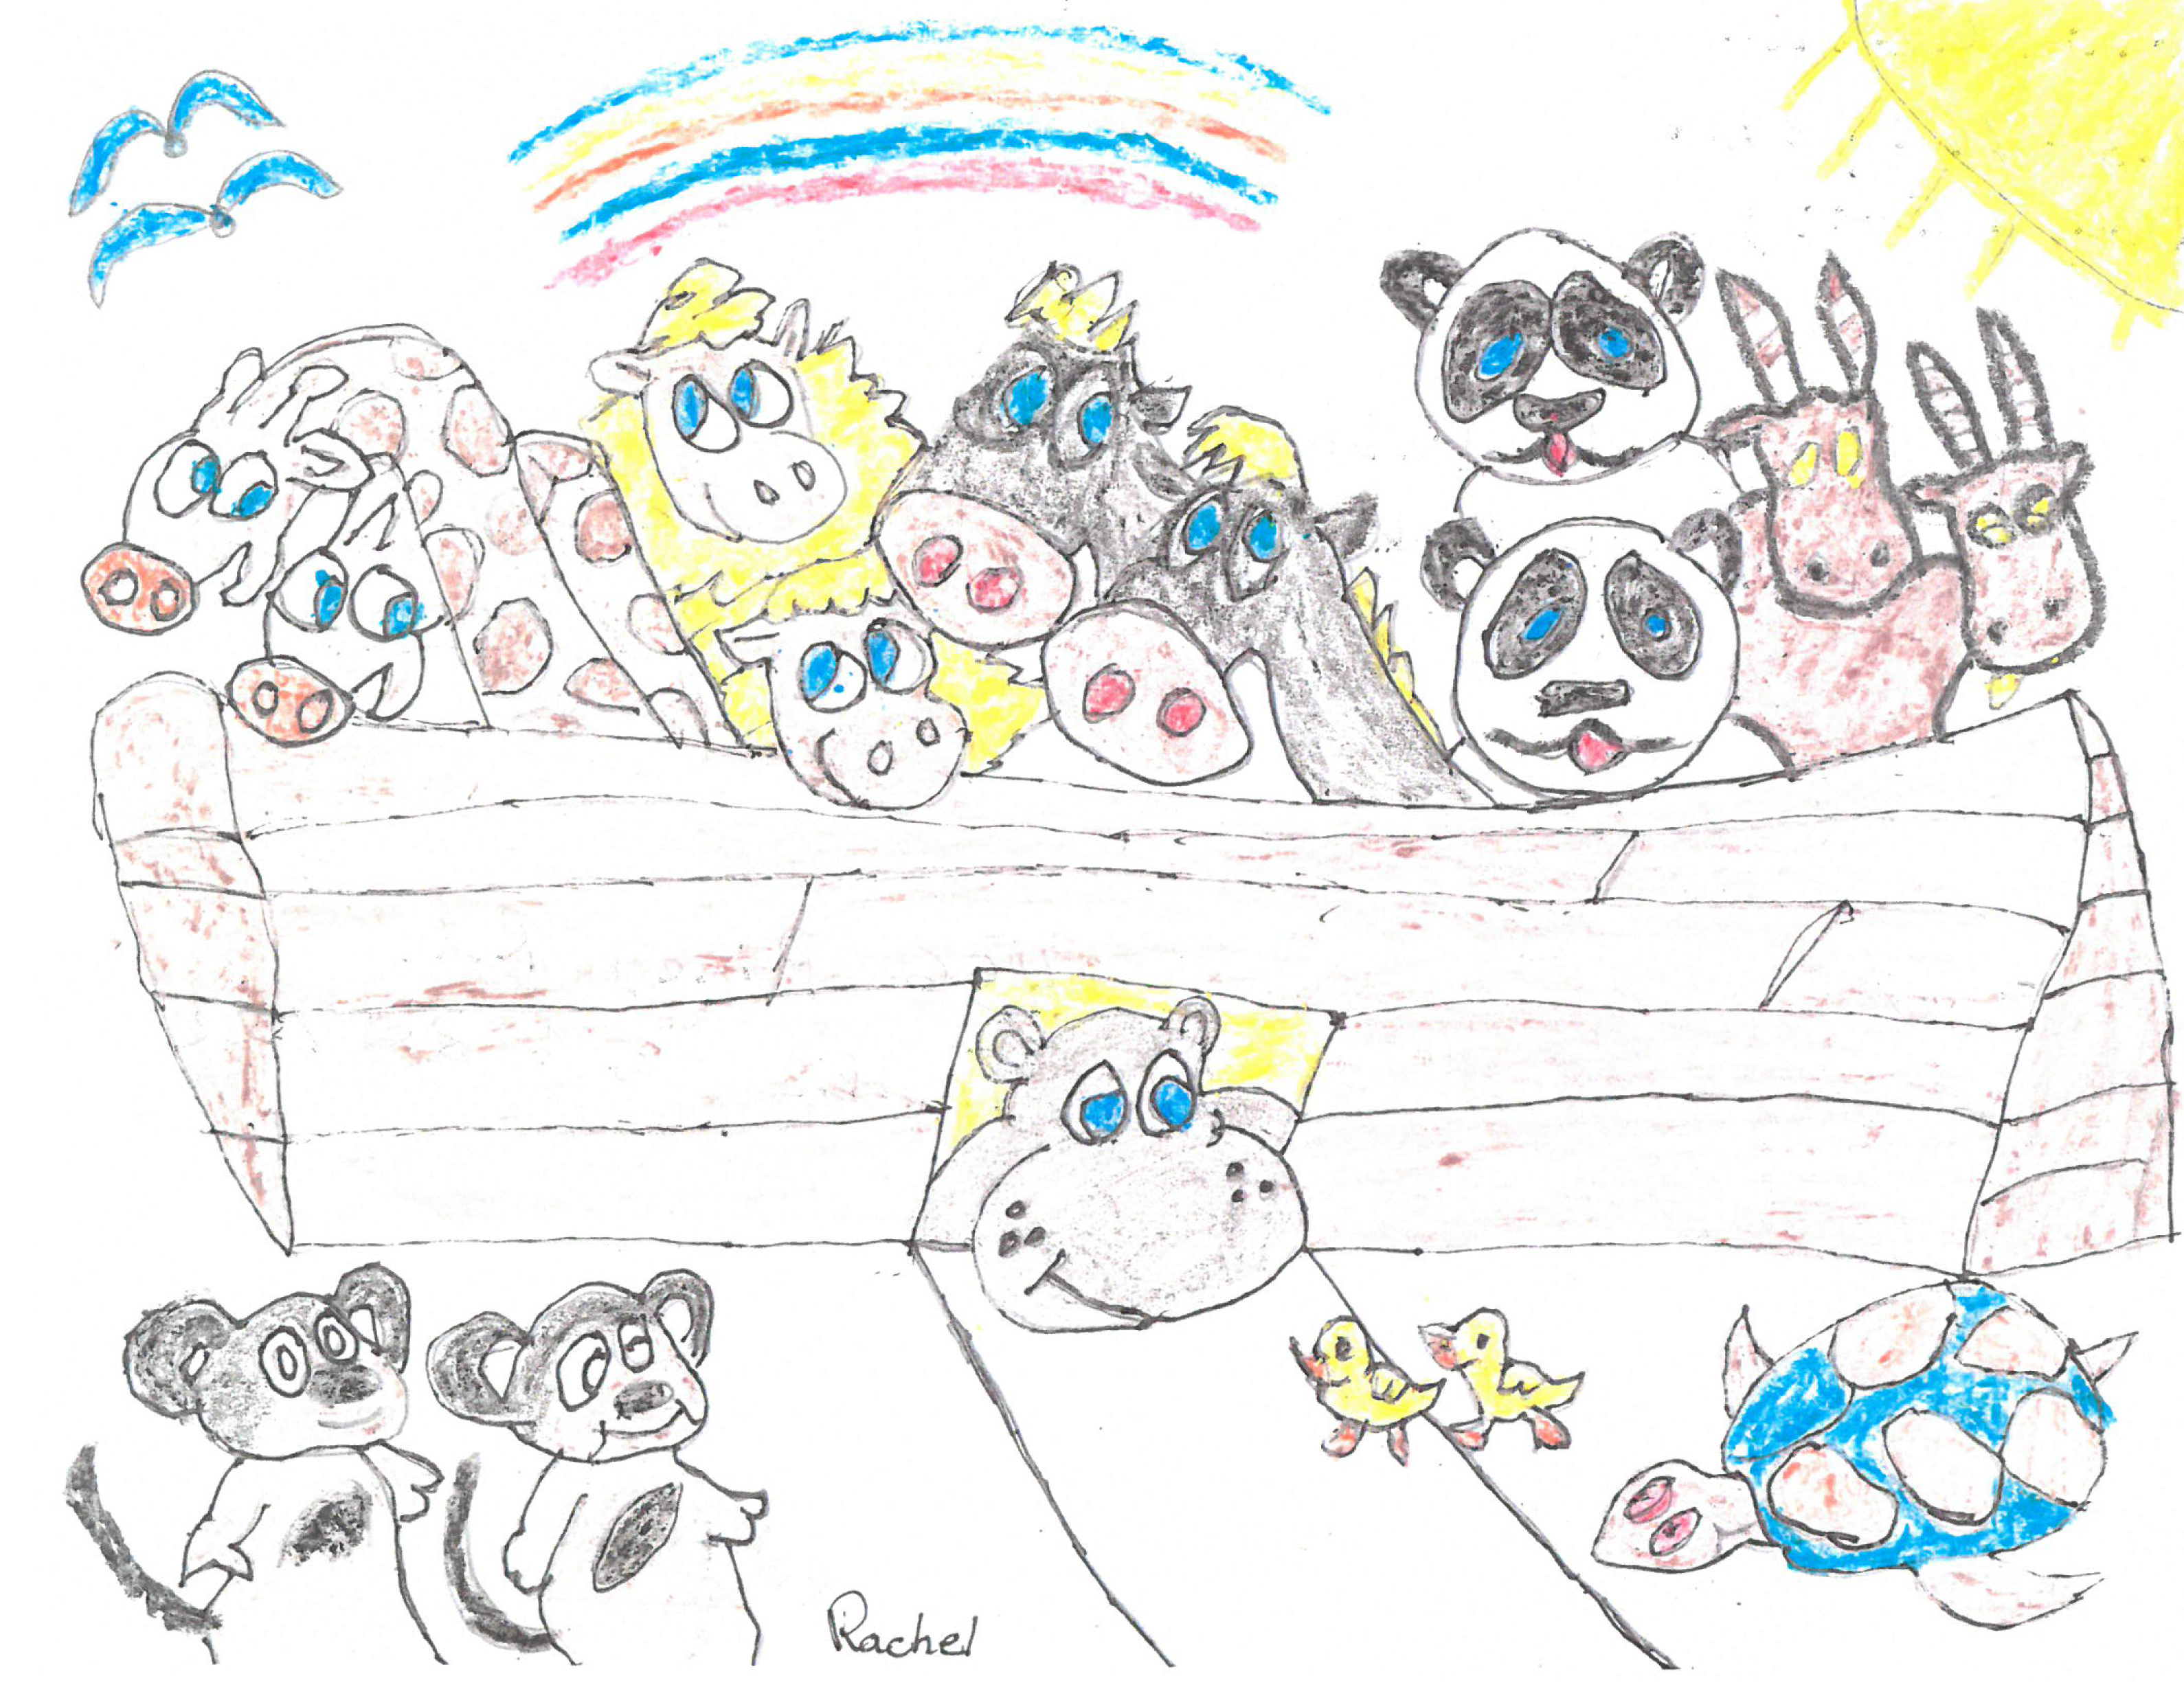 noah u0027s ark coloring contest blog shining the light in the